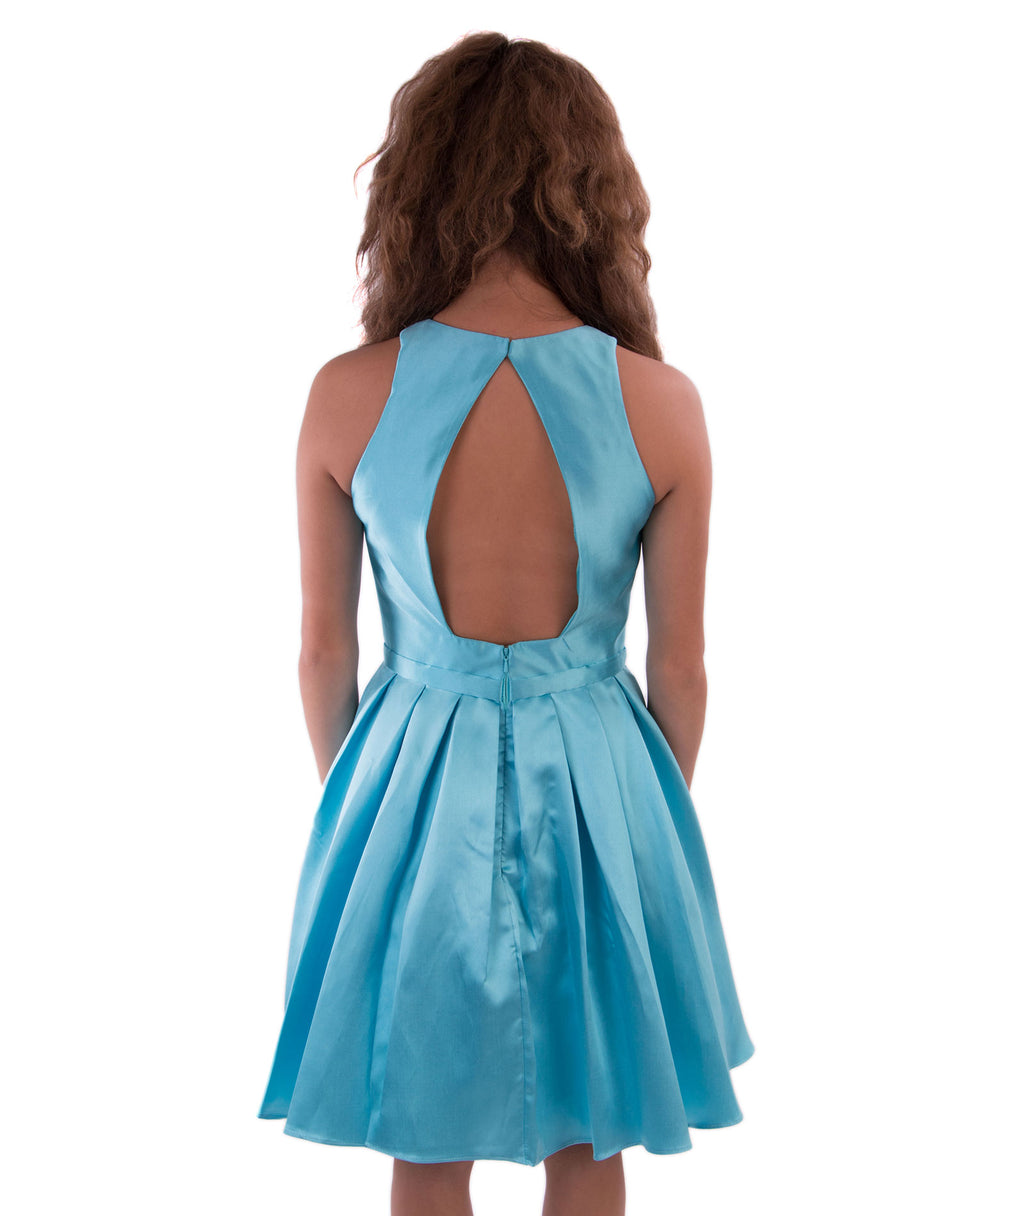 Jovani Womens Turquoise Party Dress - Frankie's on the Park